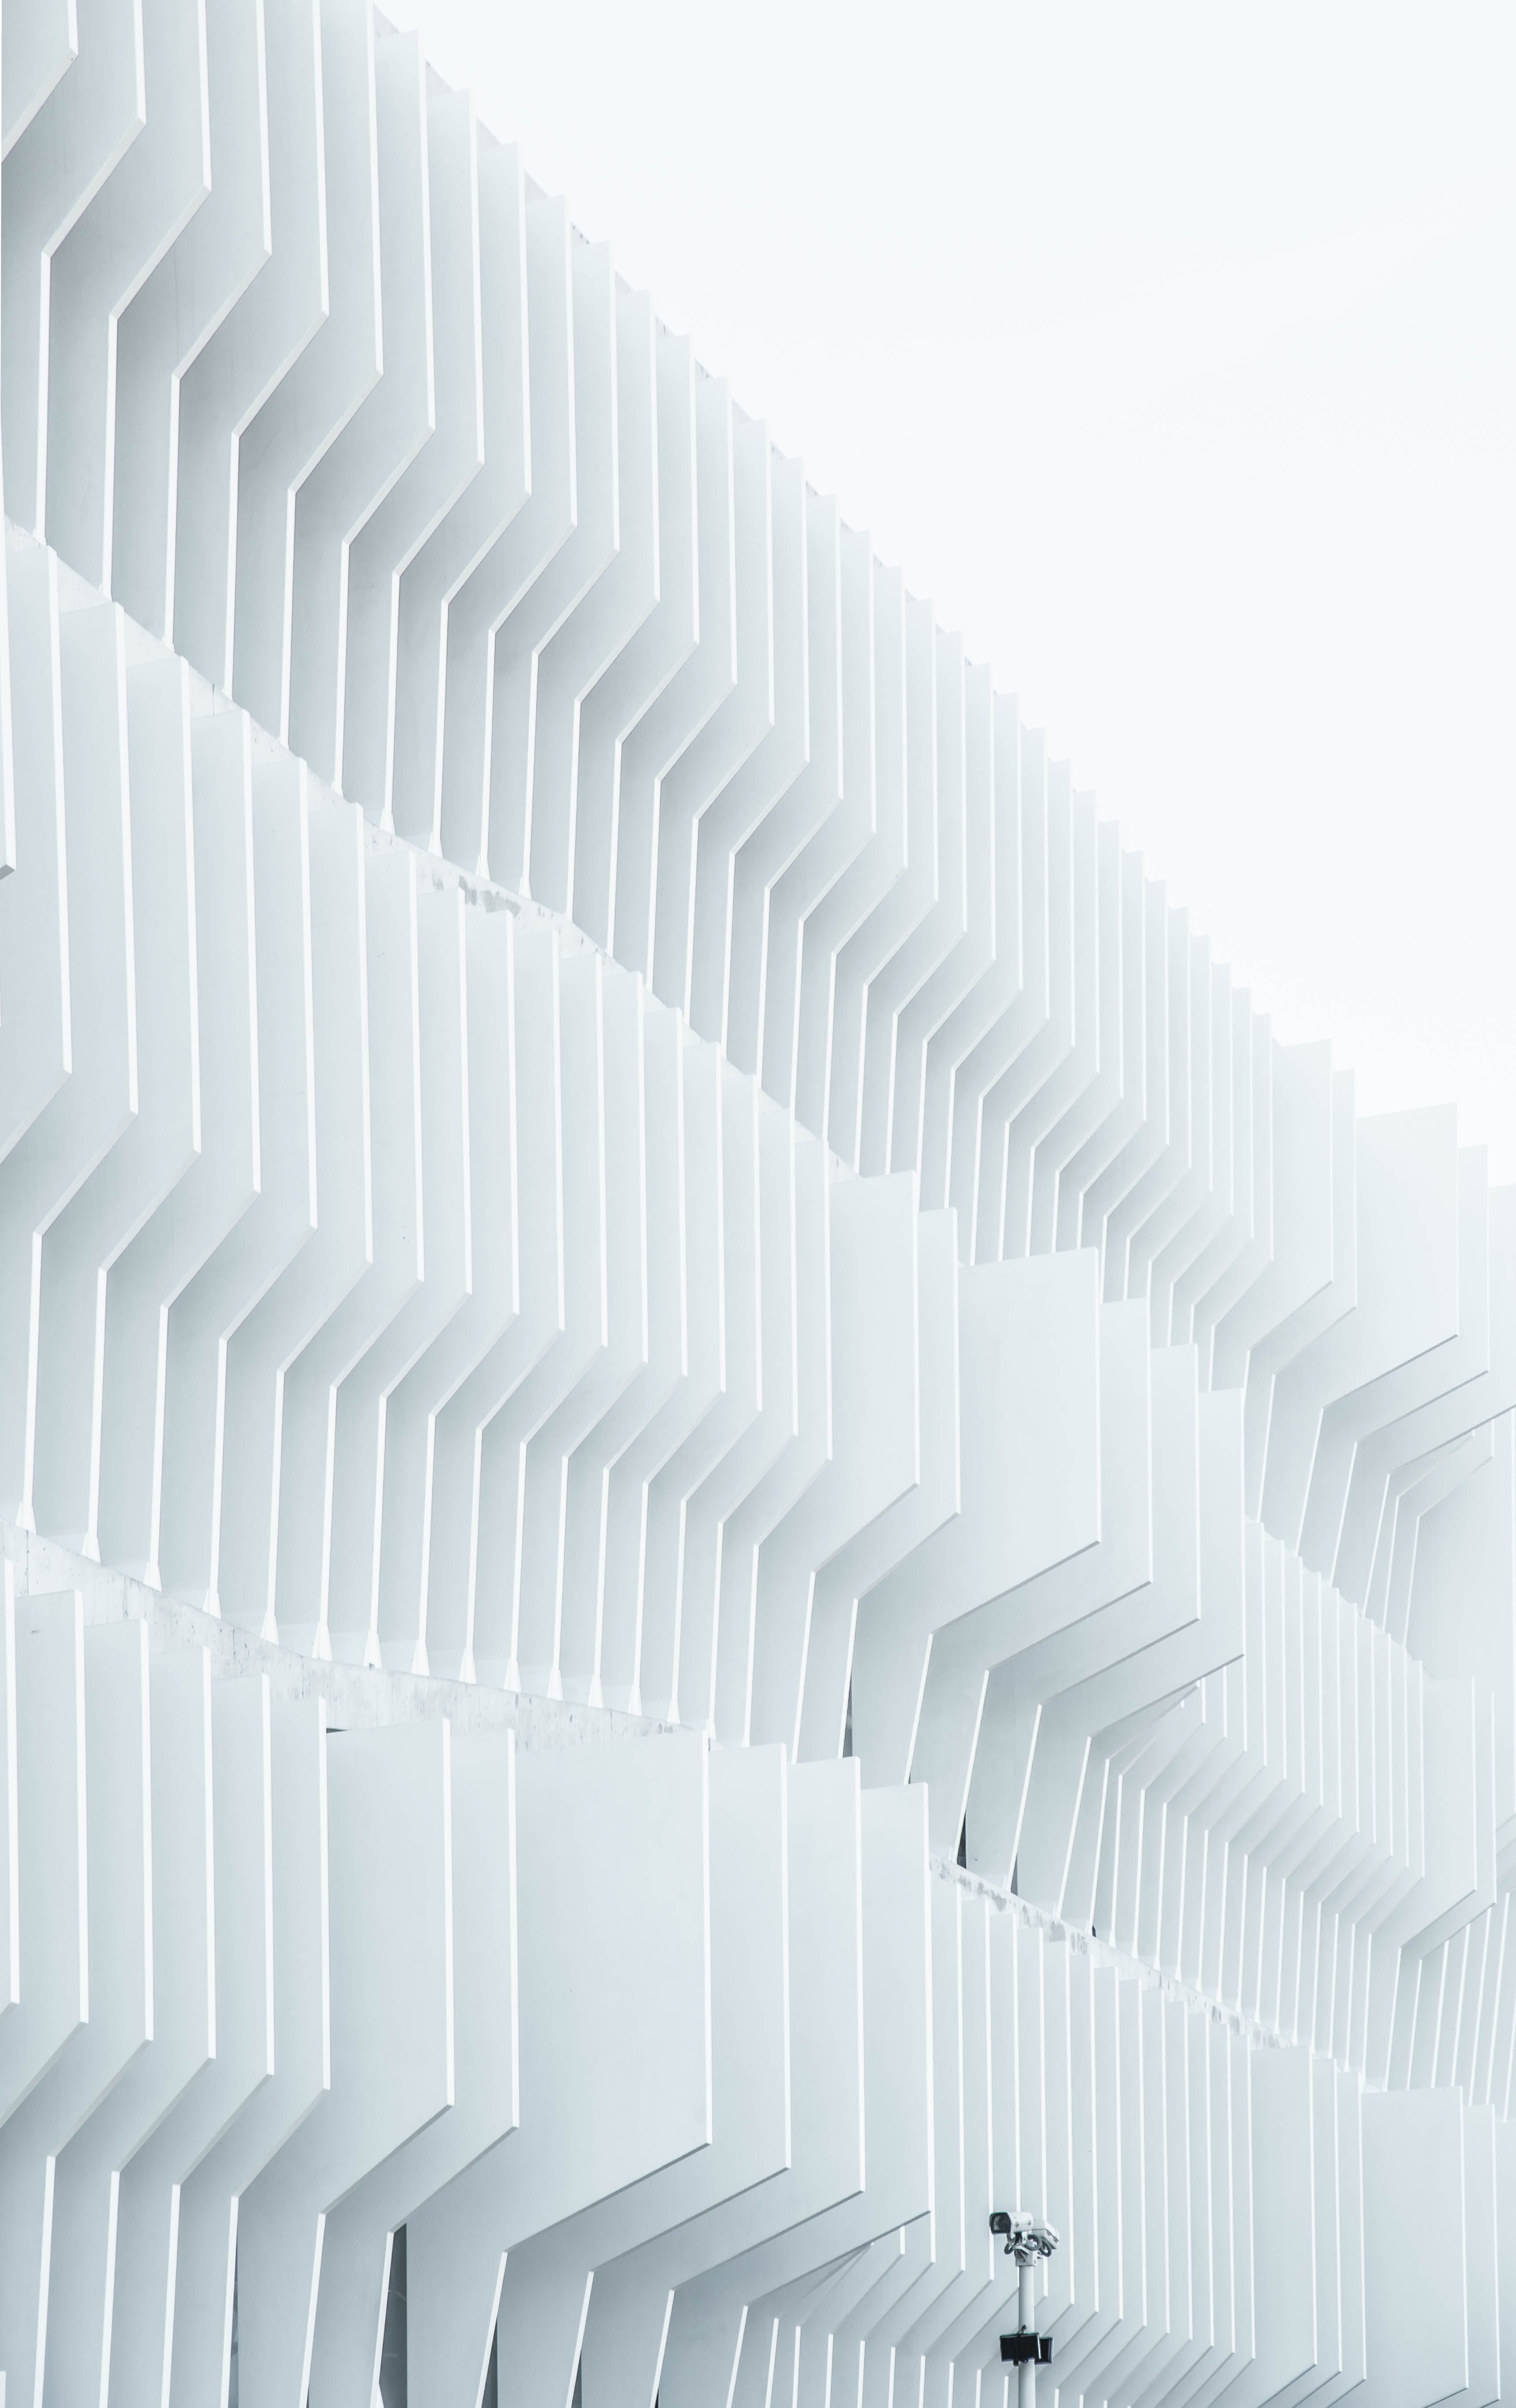 A security camera near parallel white ribs in a building facade in Madrid